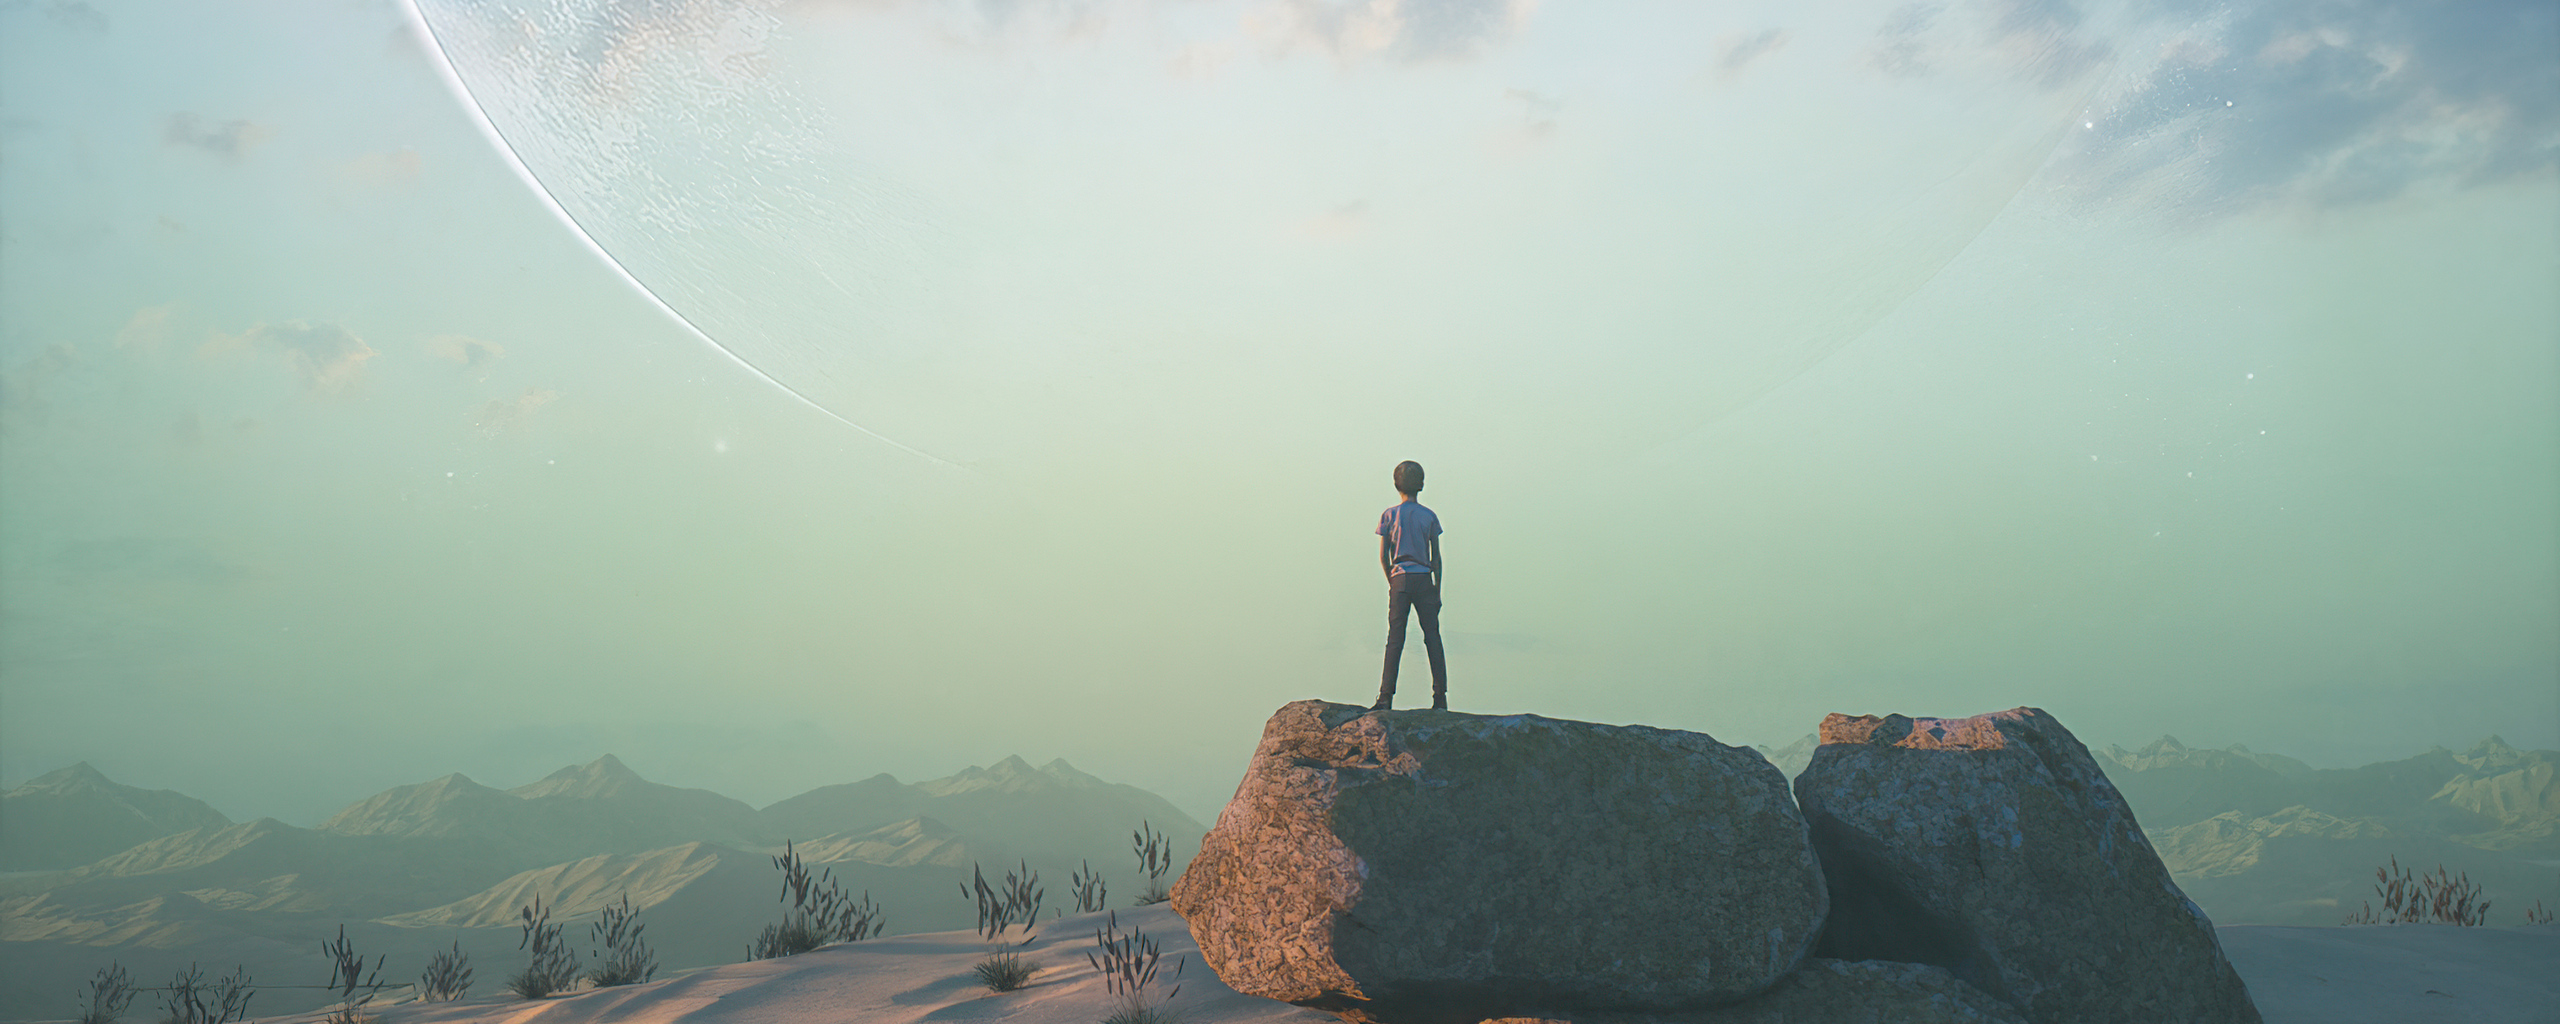 boy-standing-on-rock-looking-at-landscape-view-4k-f9.jpg